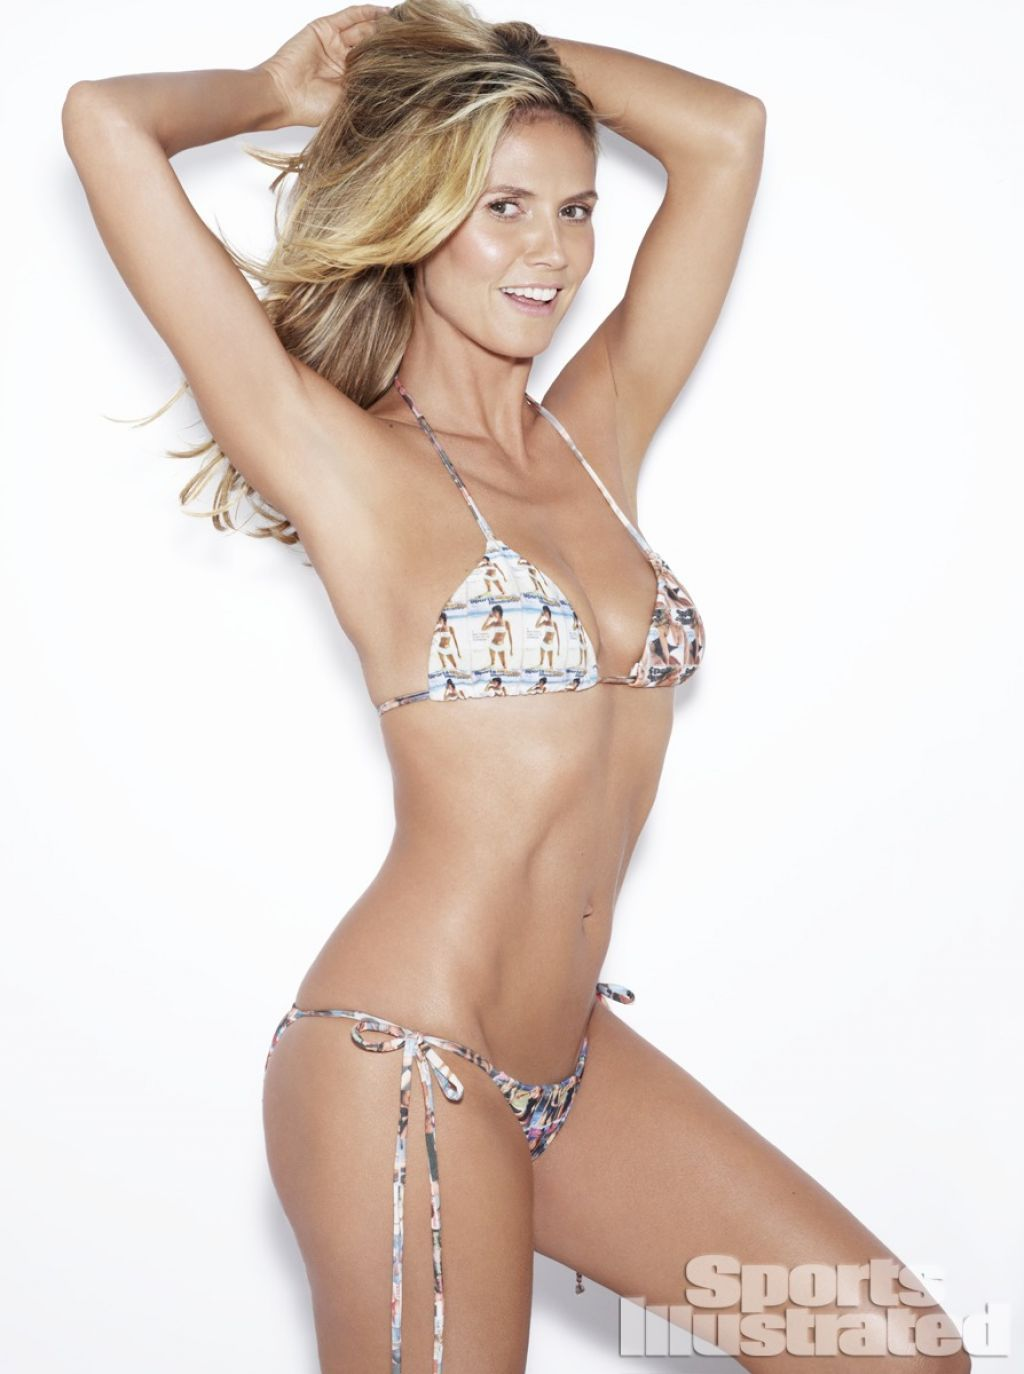 Heidi Klum - Sports Illustrated Swimwear Photoshoot 2014